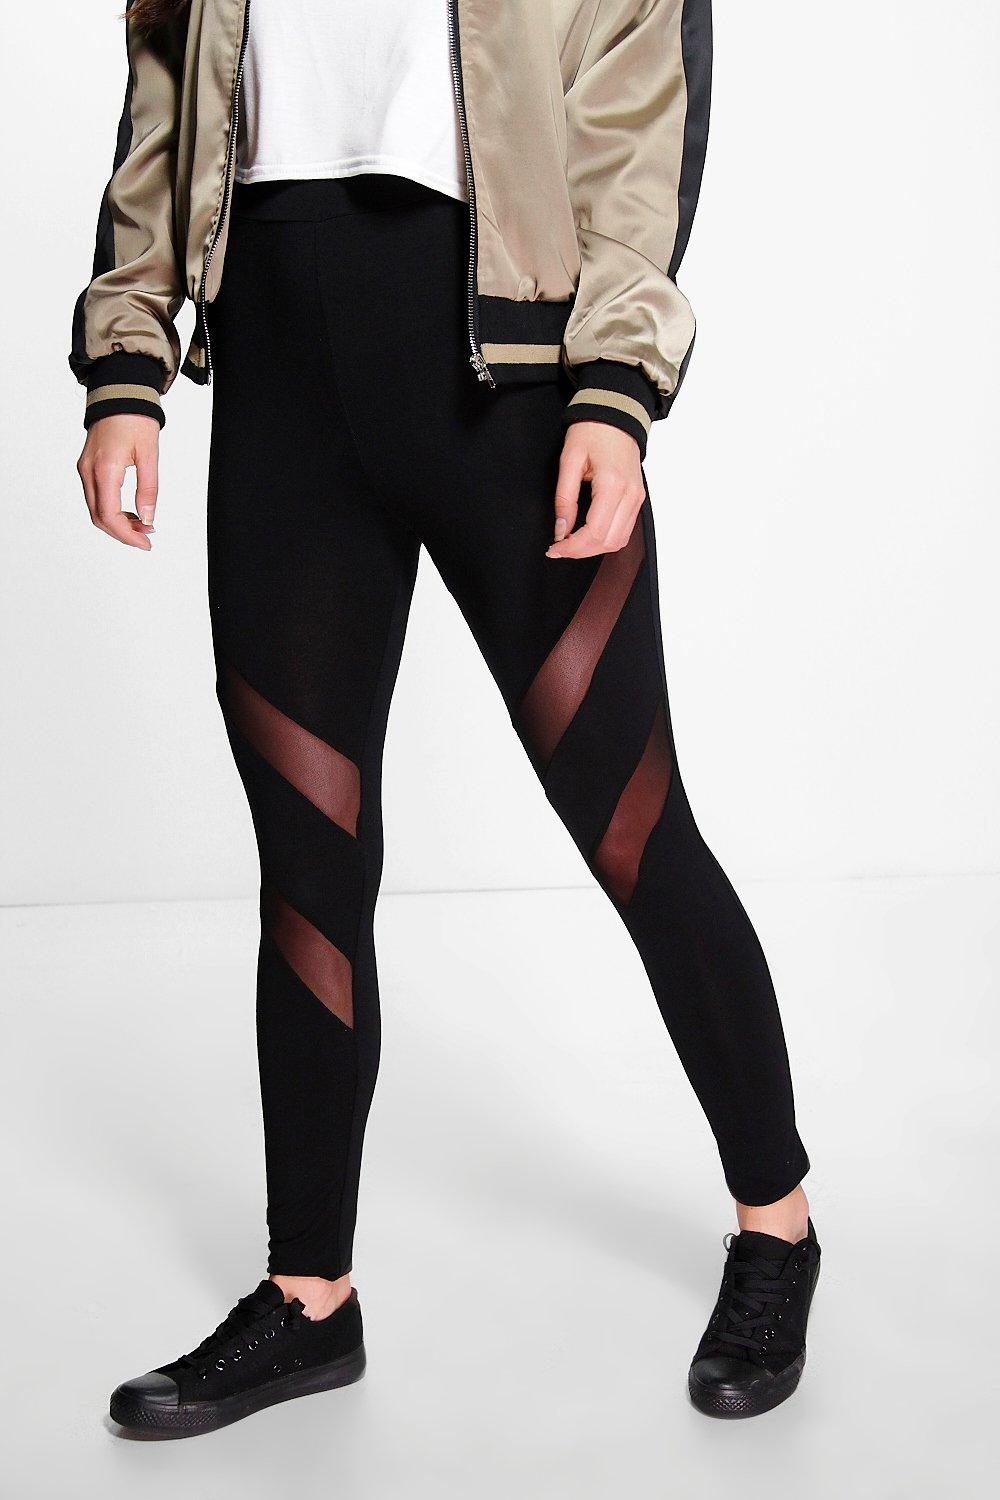 Your Must-Have Pair of Leggings, Based on Your Sign